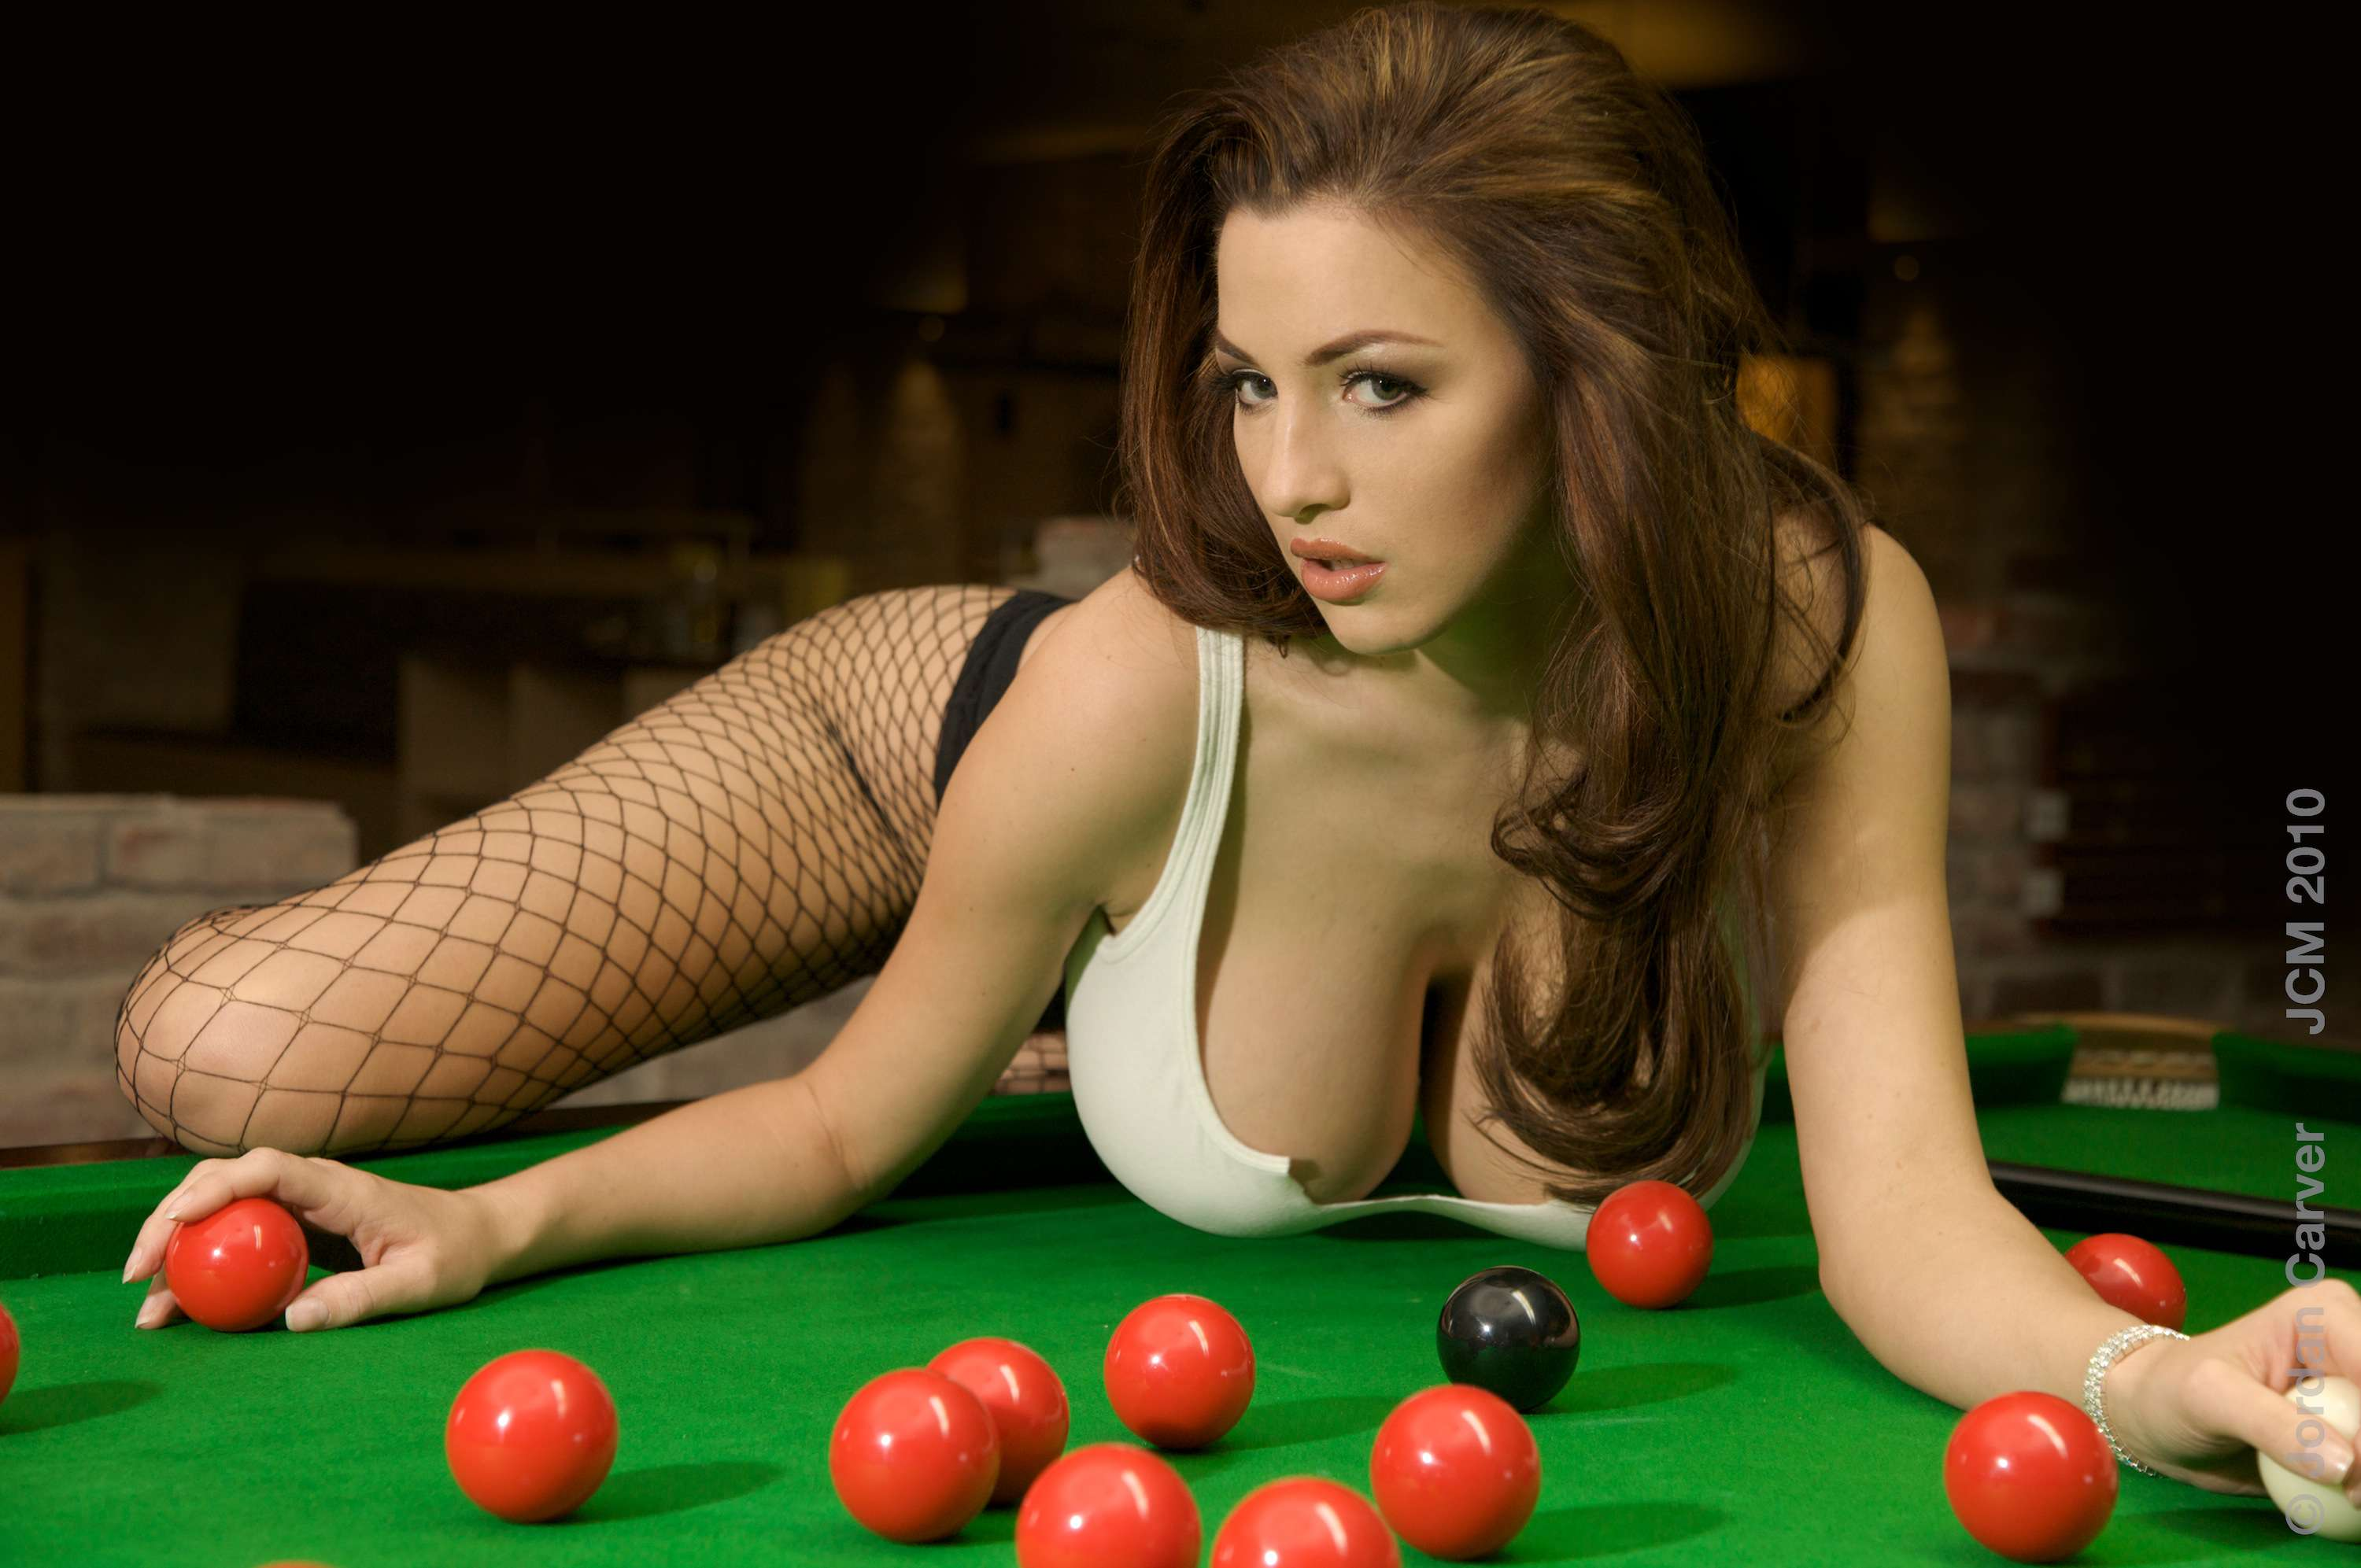 Jordan Carver Play With Me